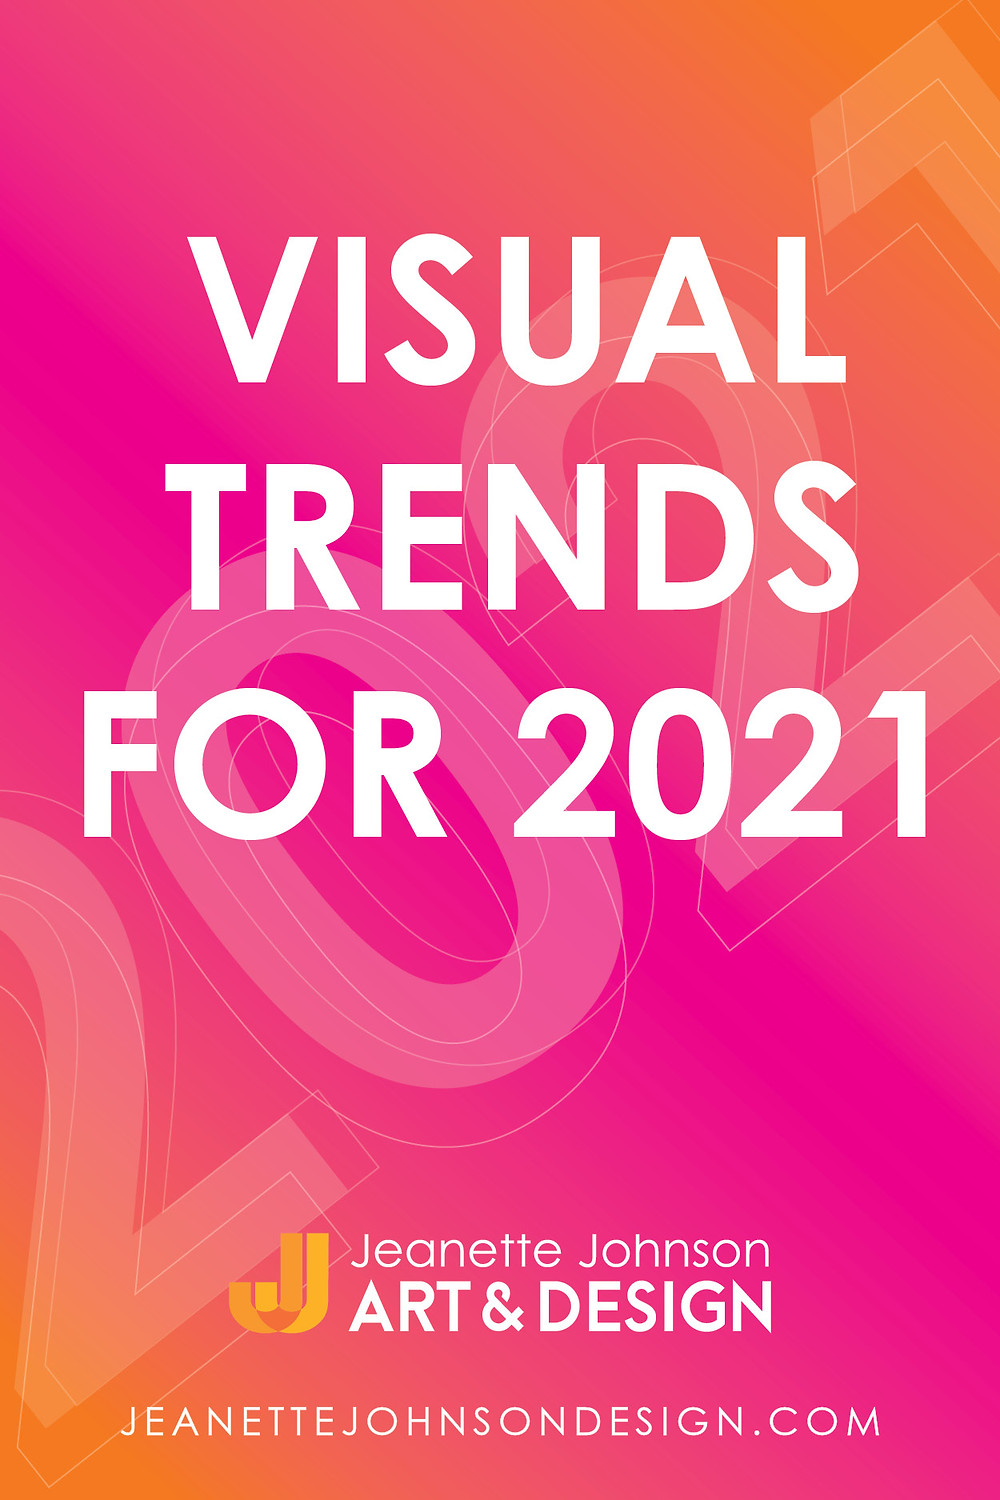 Pin Image for Visual Trends for 2021 article.